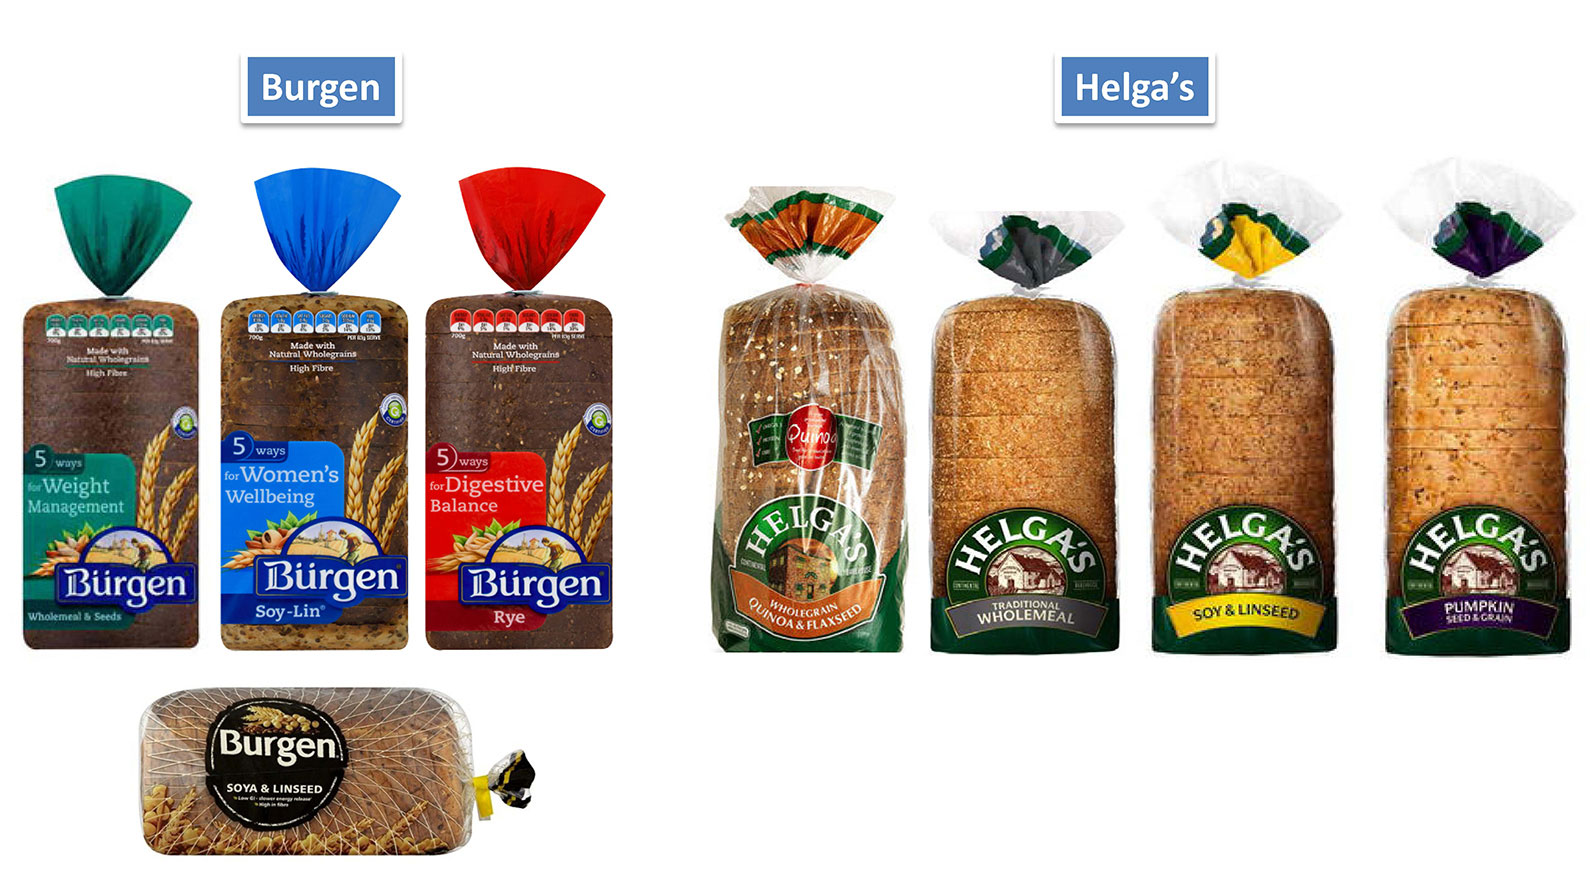 Burgen and Helga's breads